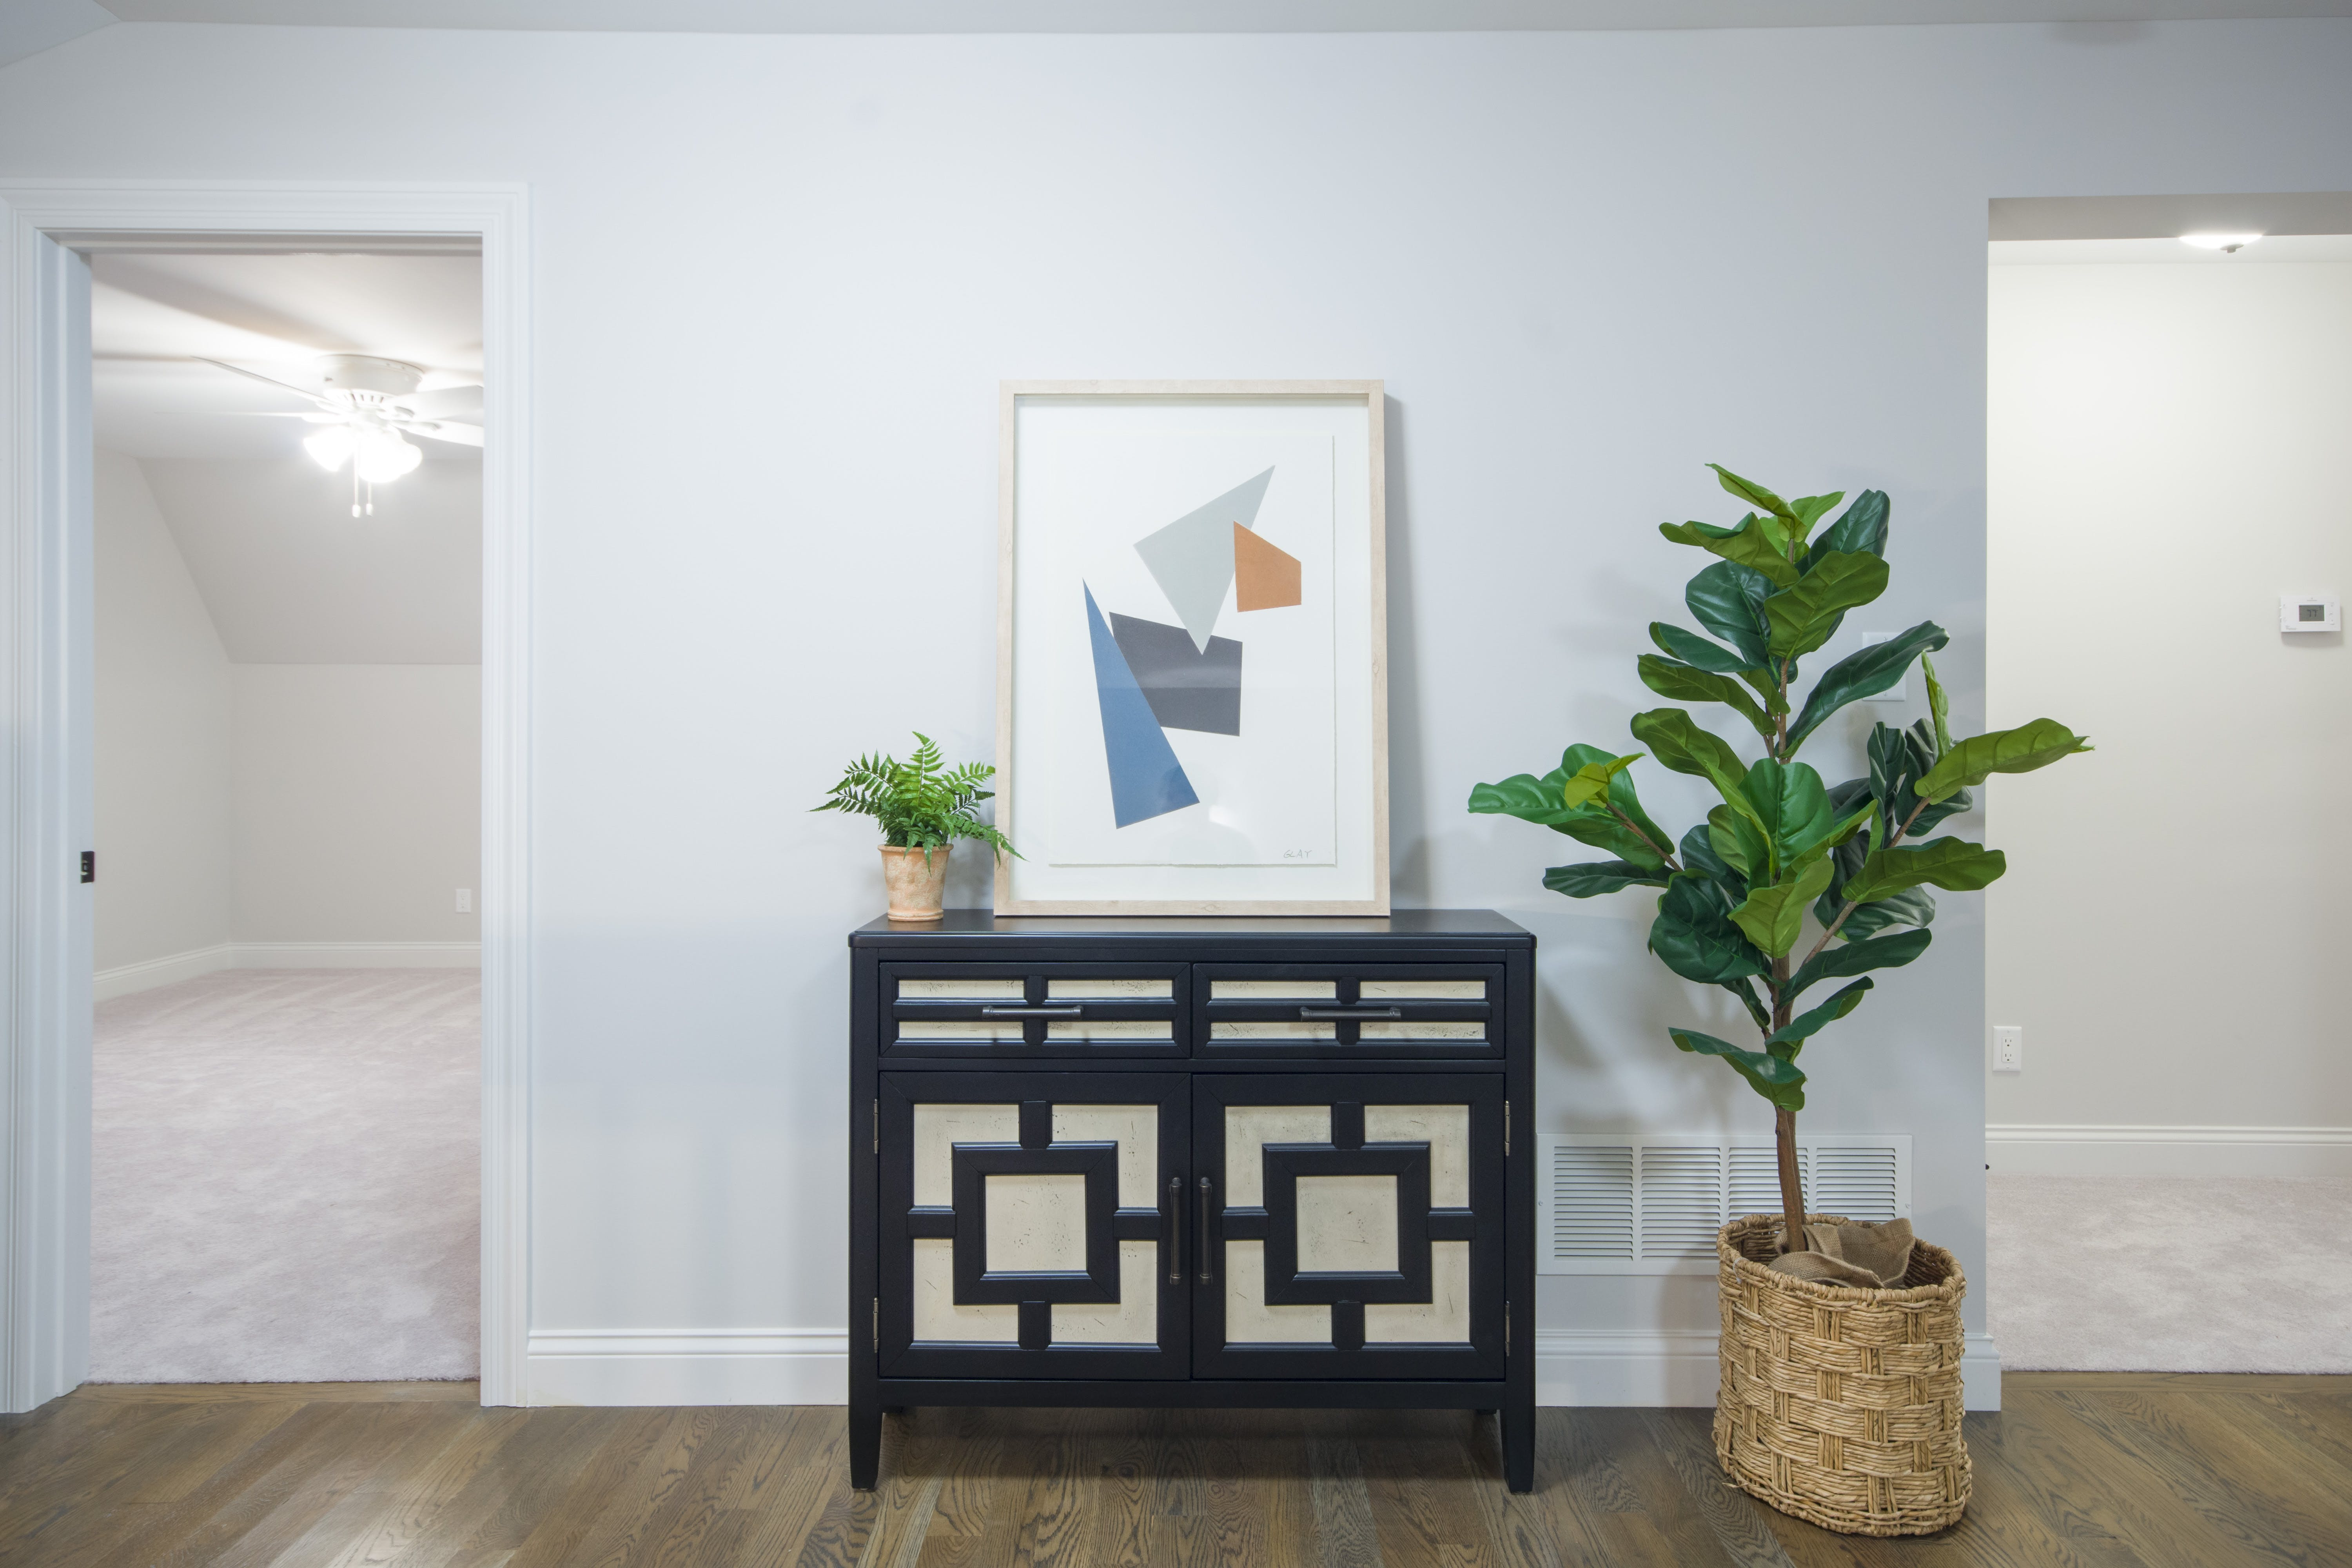 Brown and White Wooden Cabinet Near Green Leafed Plant